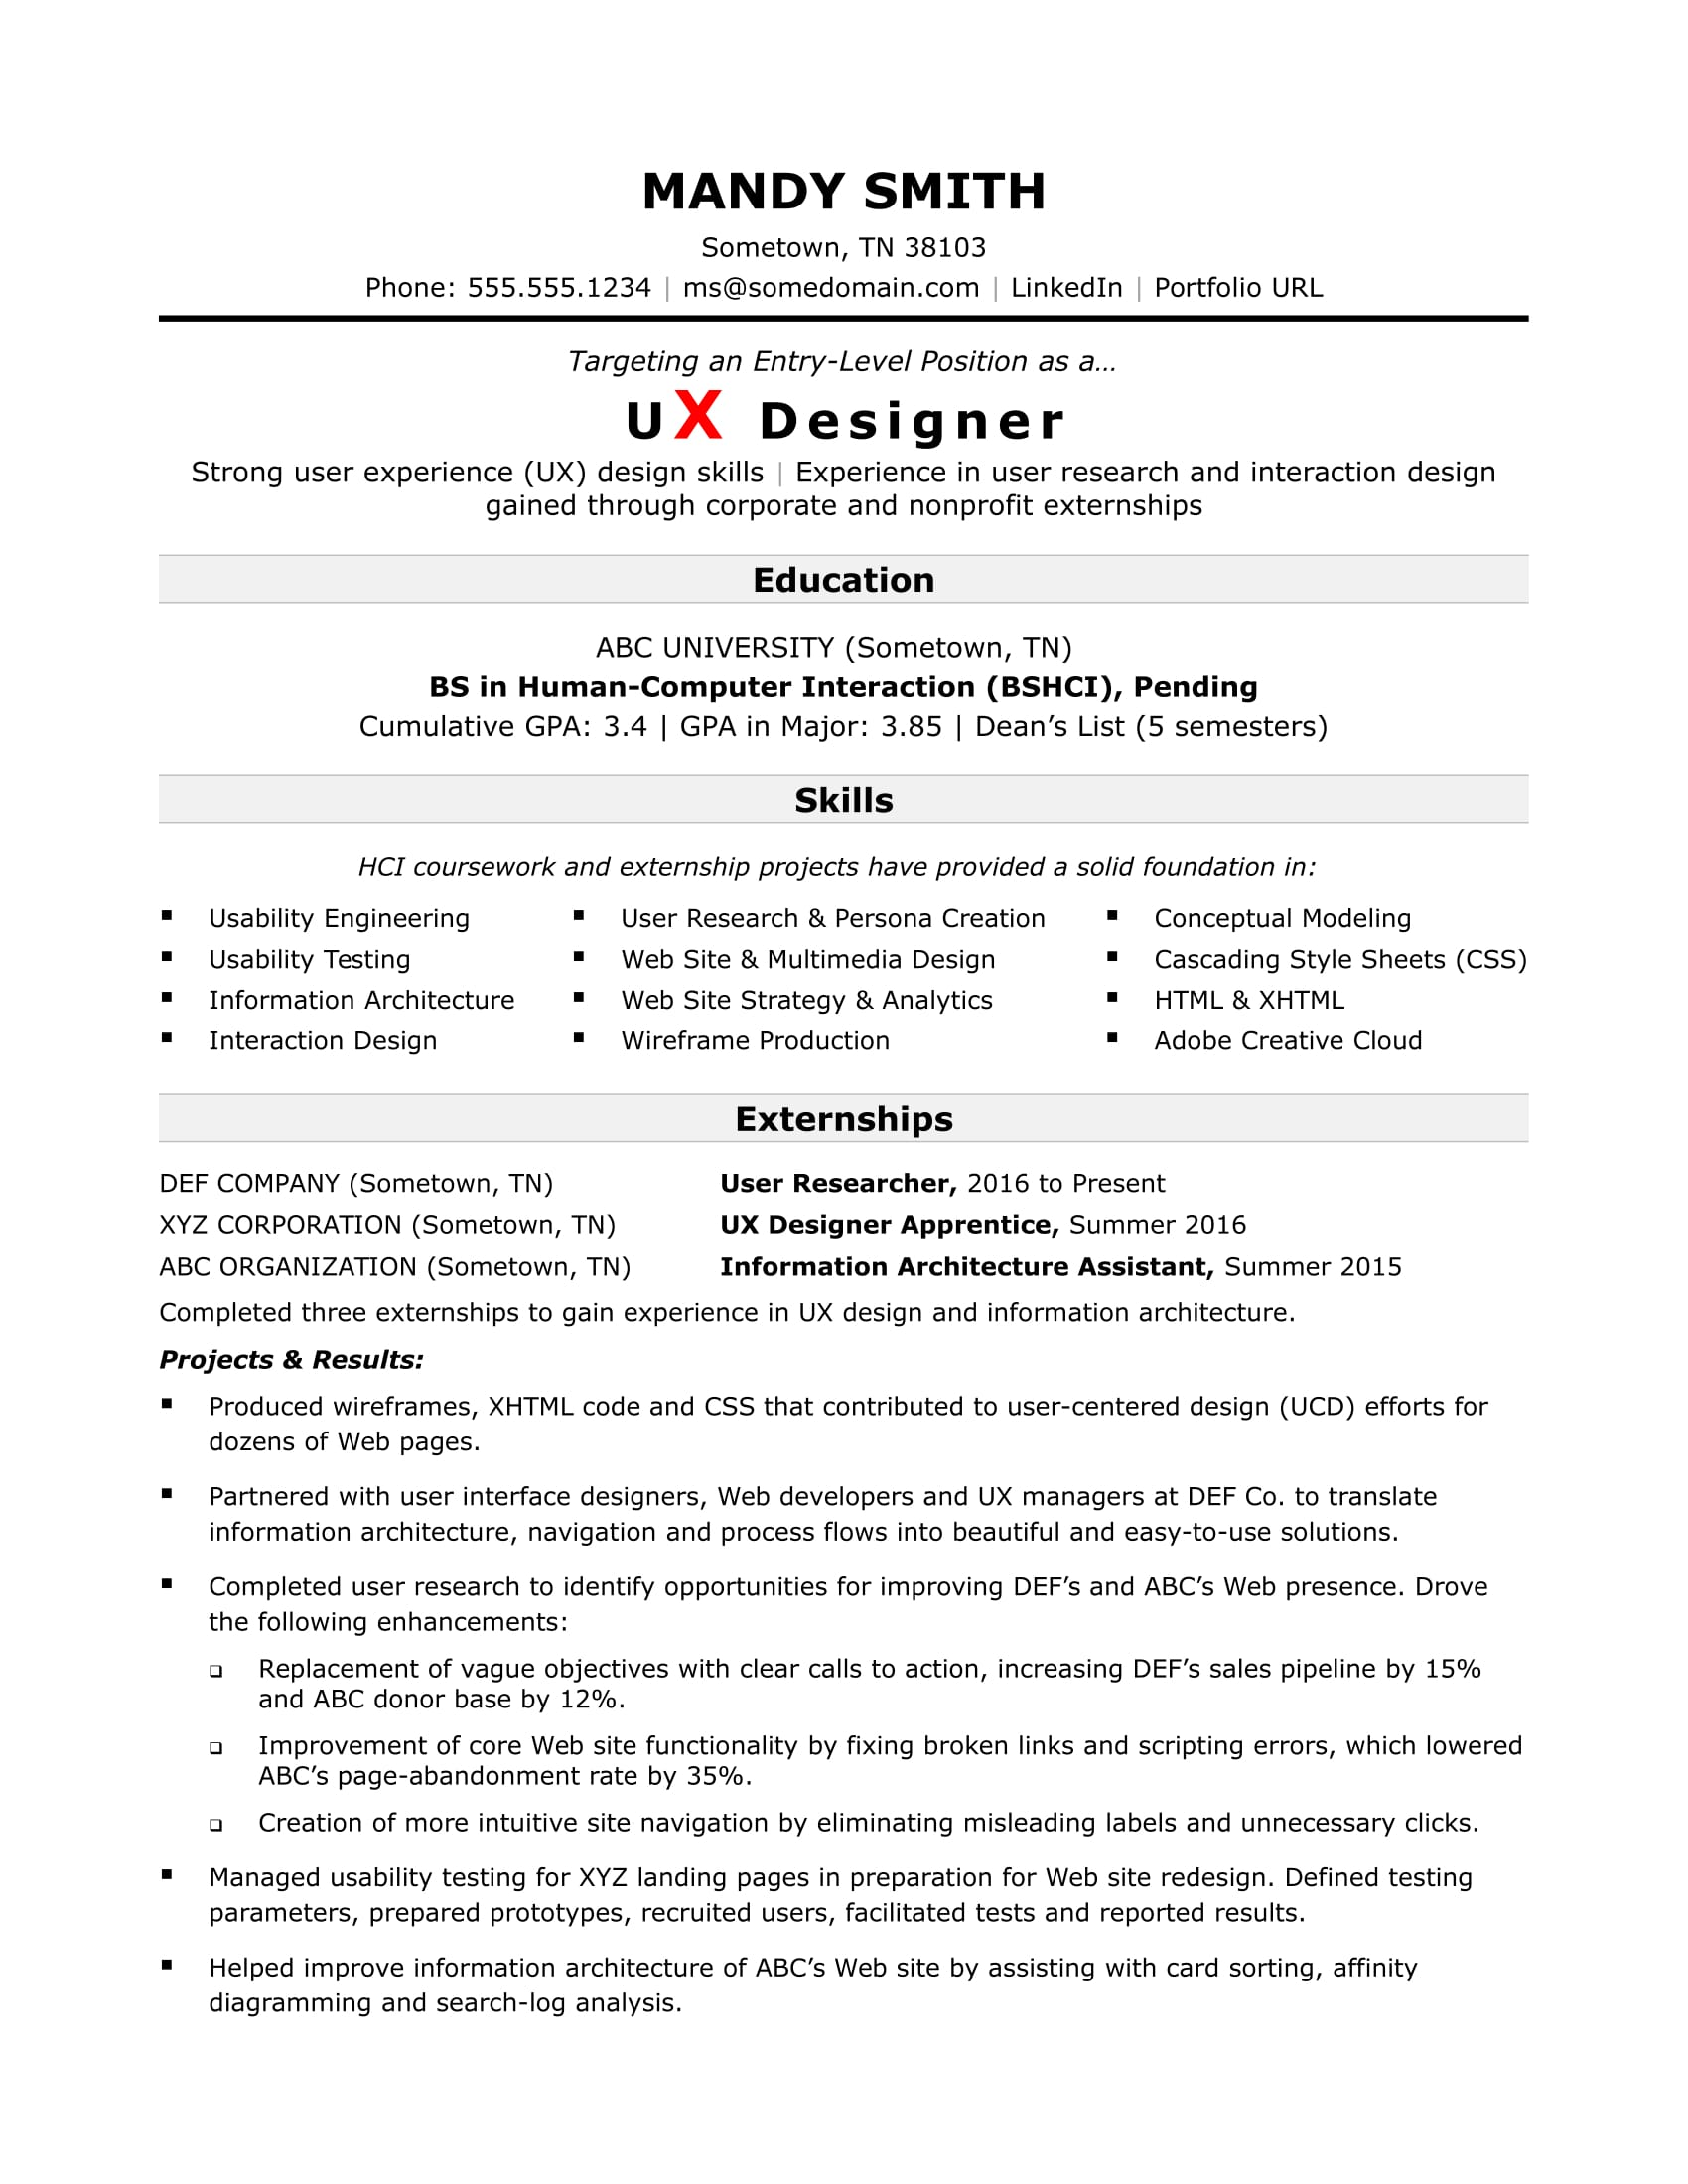 sample resume for an entry level ux designer monster beginner fashion should put hobbies Resume Beginner Fashion Designer Resume